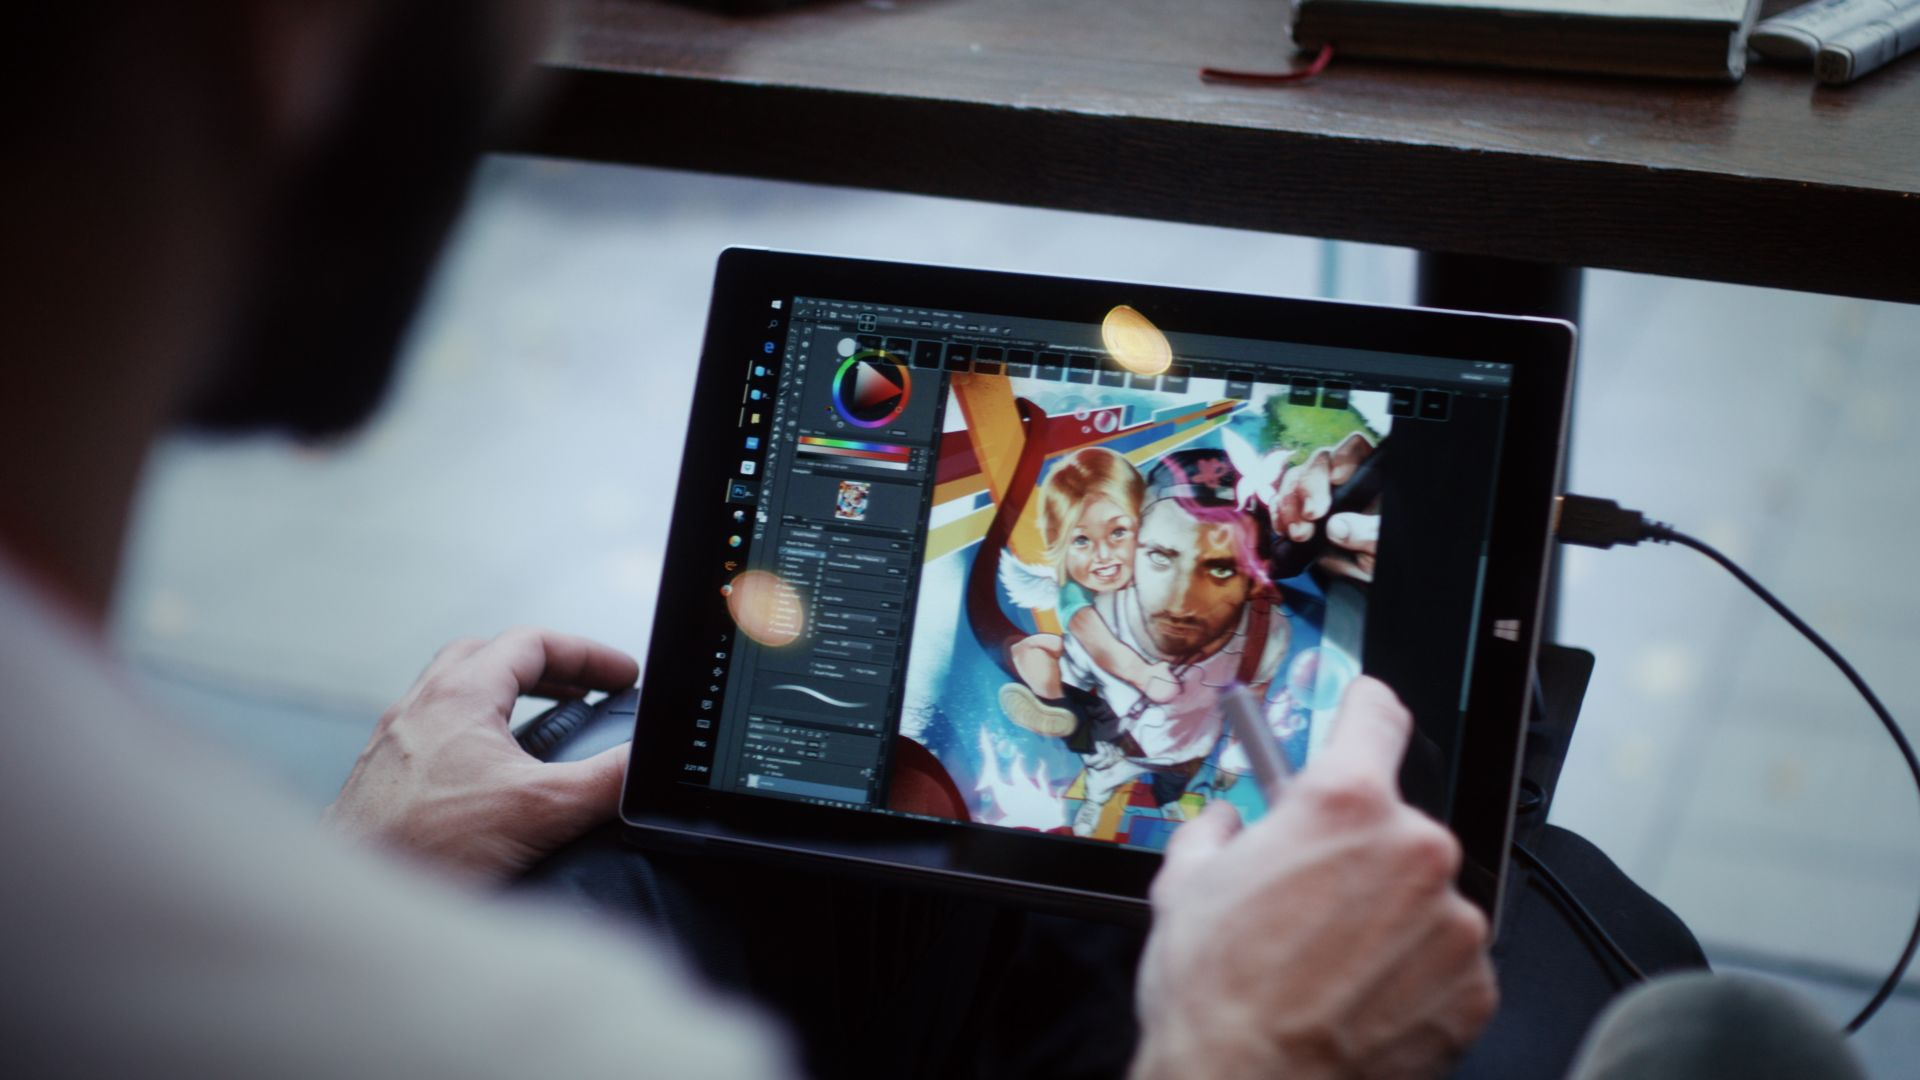 Ilias Patlis Surface Pro 4 mobile professional productivity work from anywhere